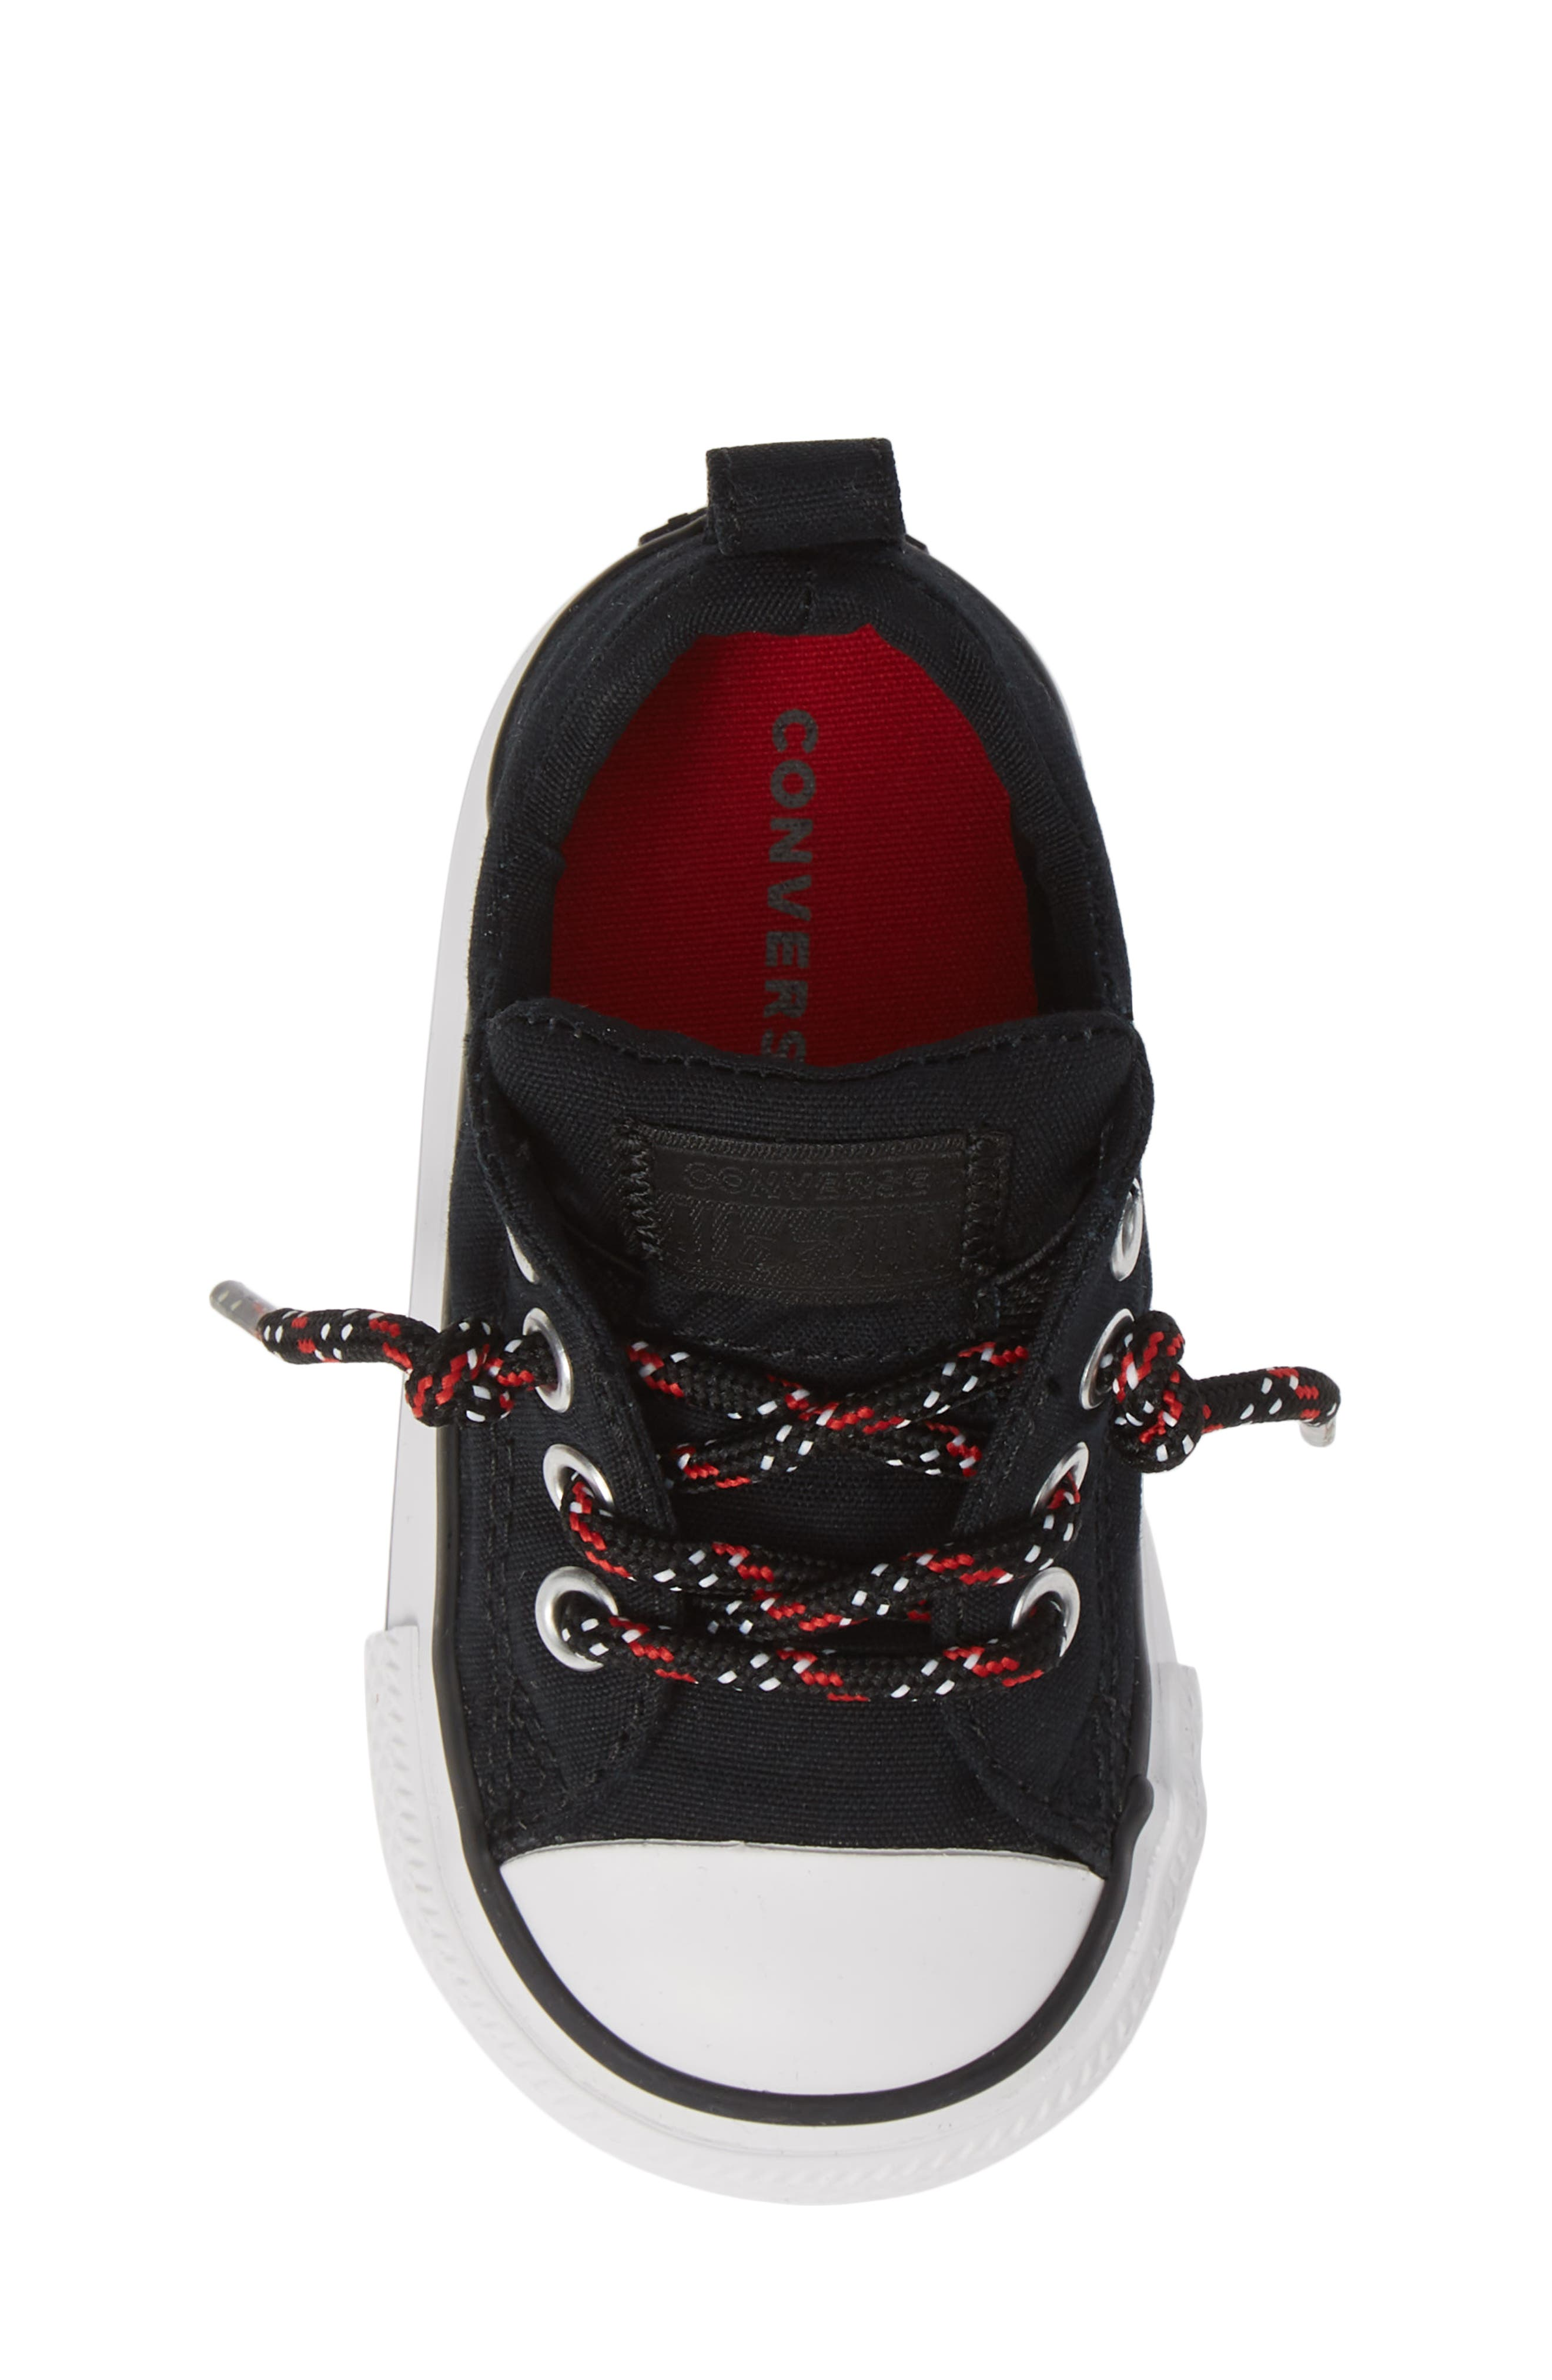 All Star<sup>®</sup> Graphite & Glitter Low Top Sneaker,                             Alternate thumbnail 5, color,                             002